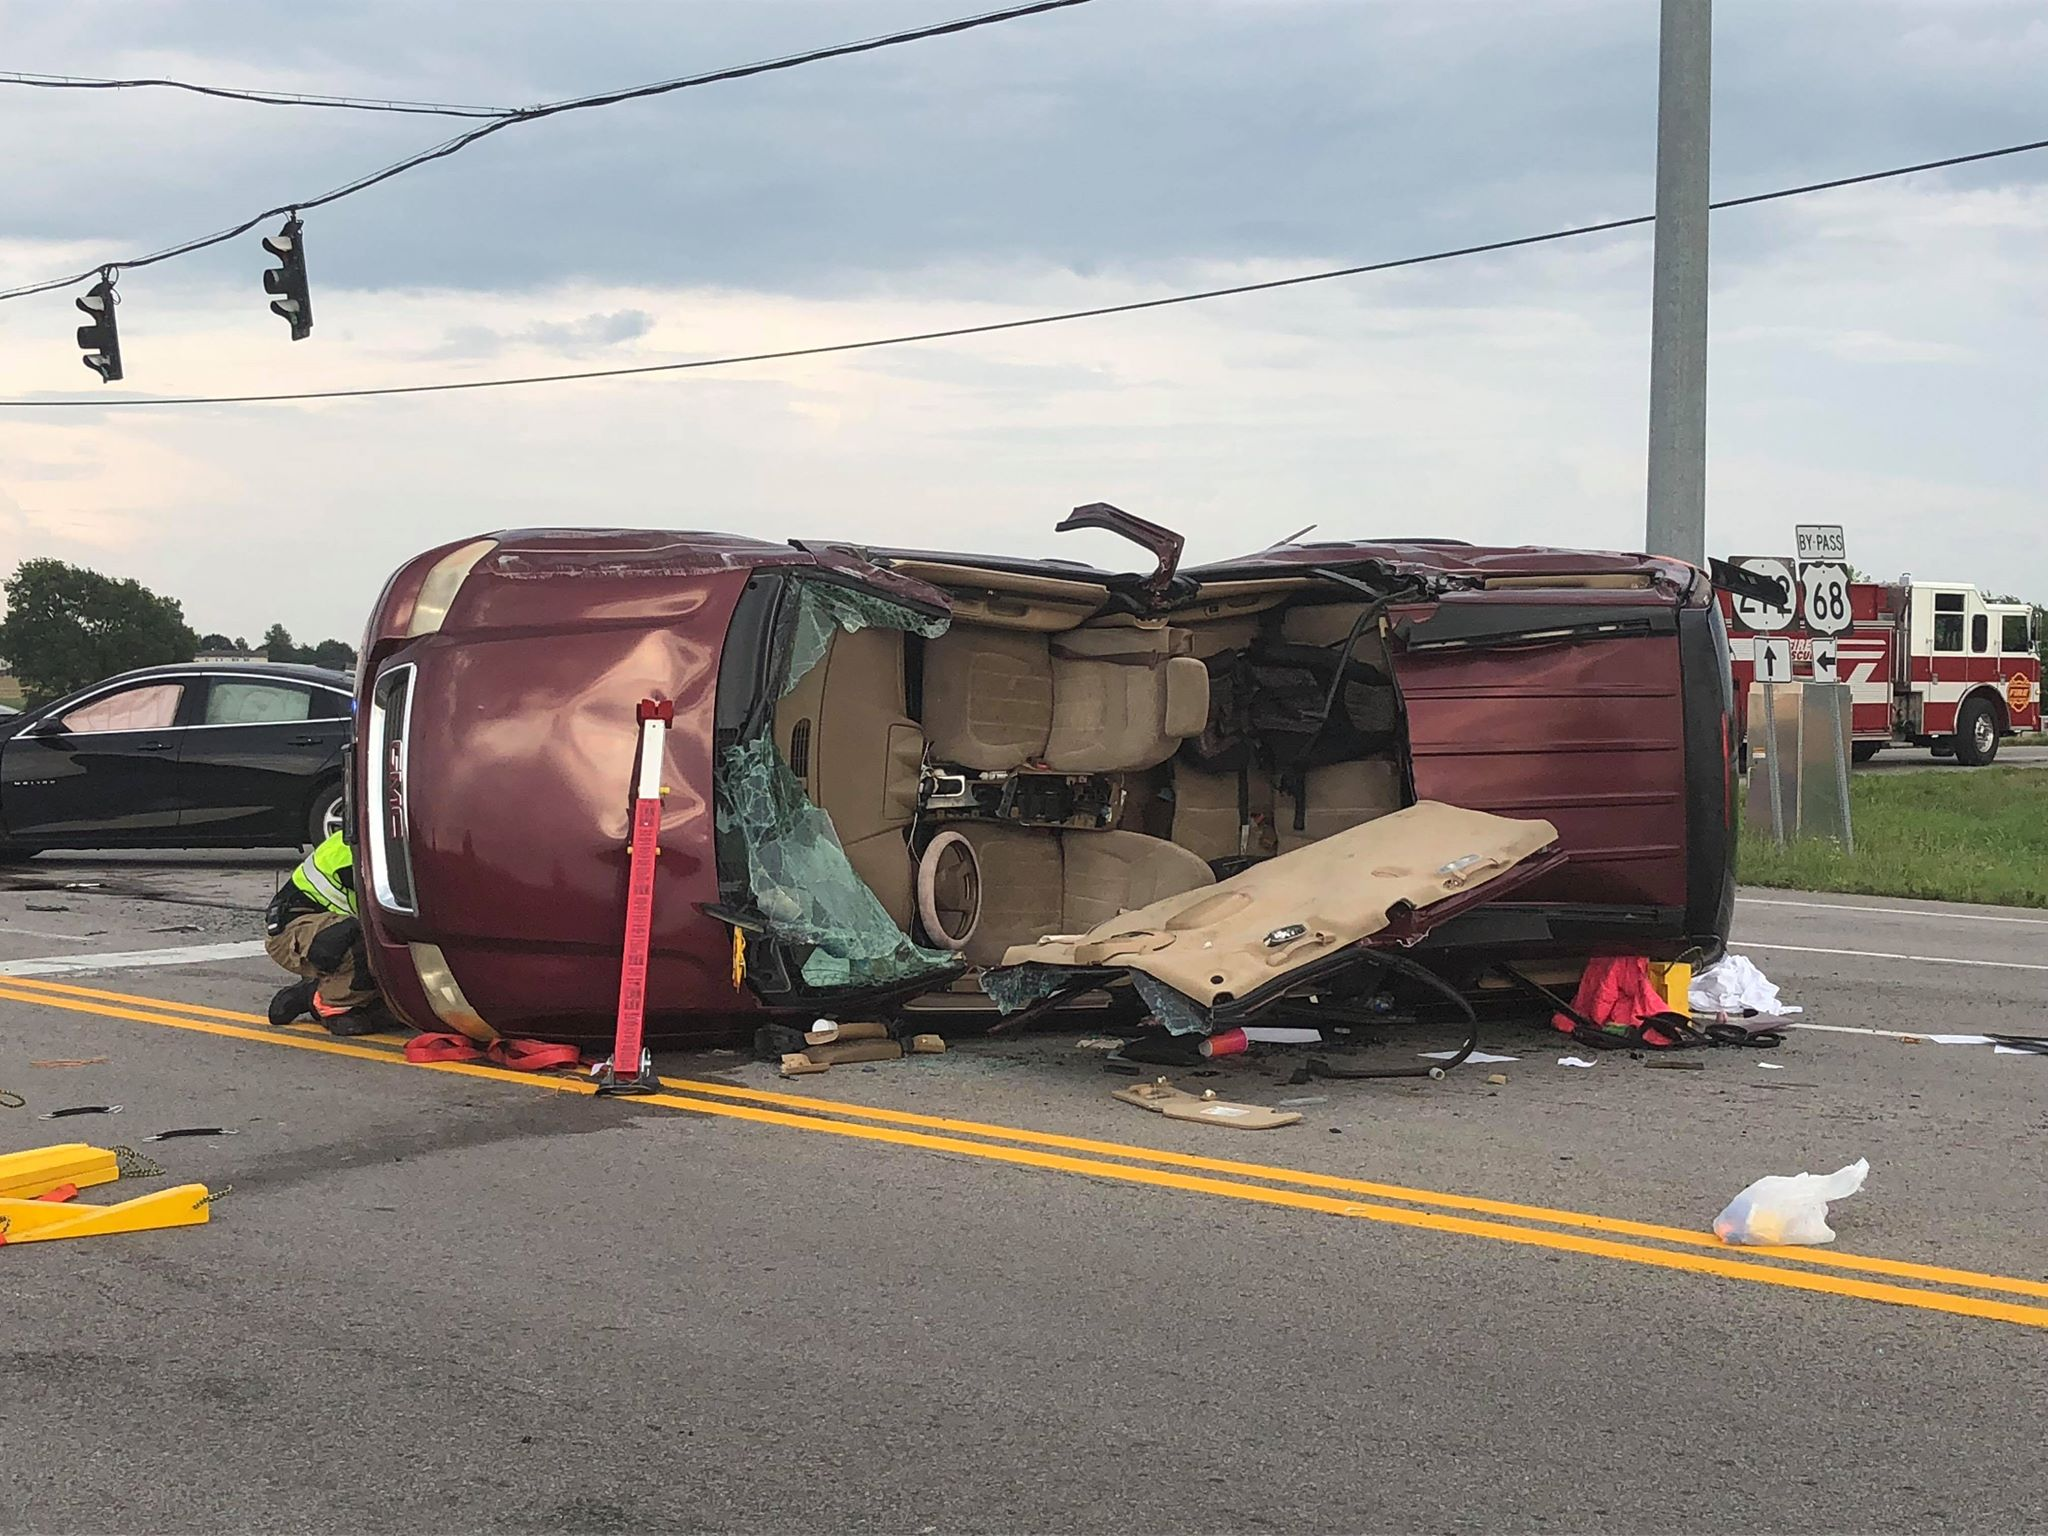 Details released on Canton Pike accident